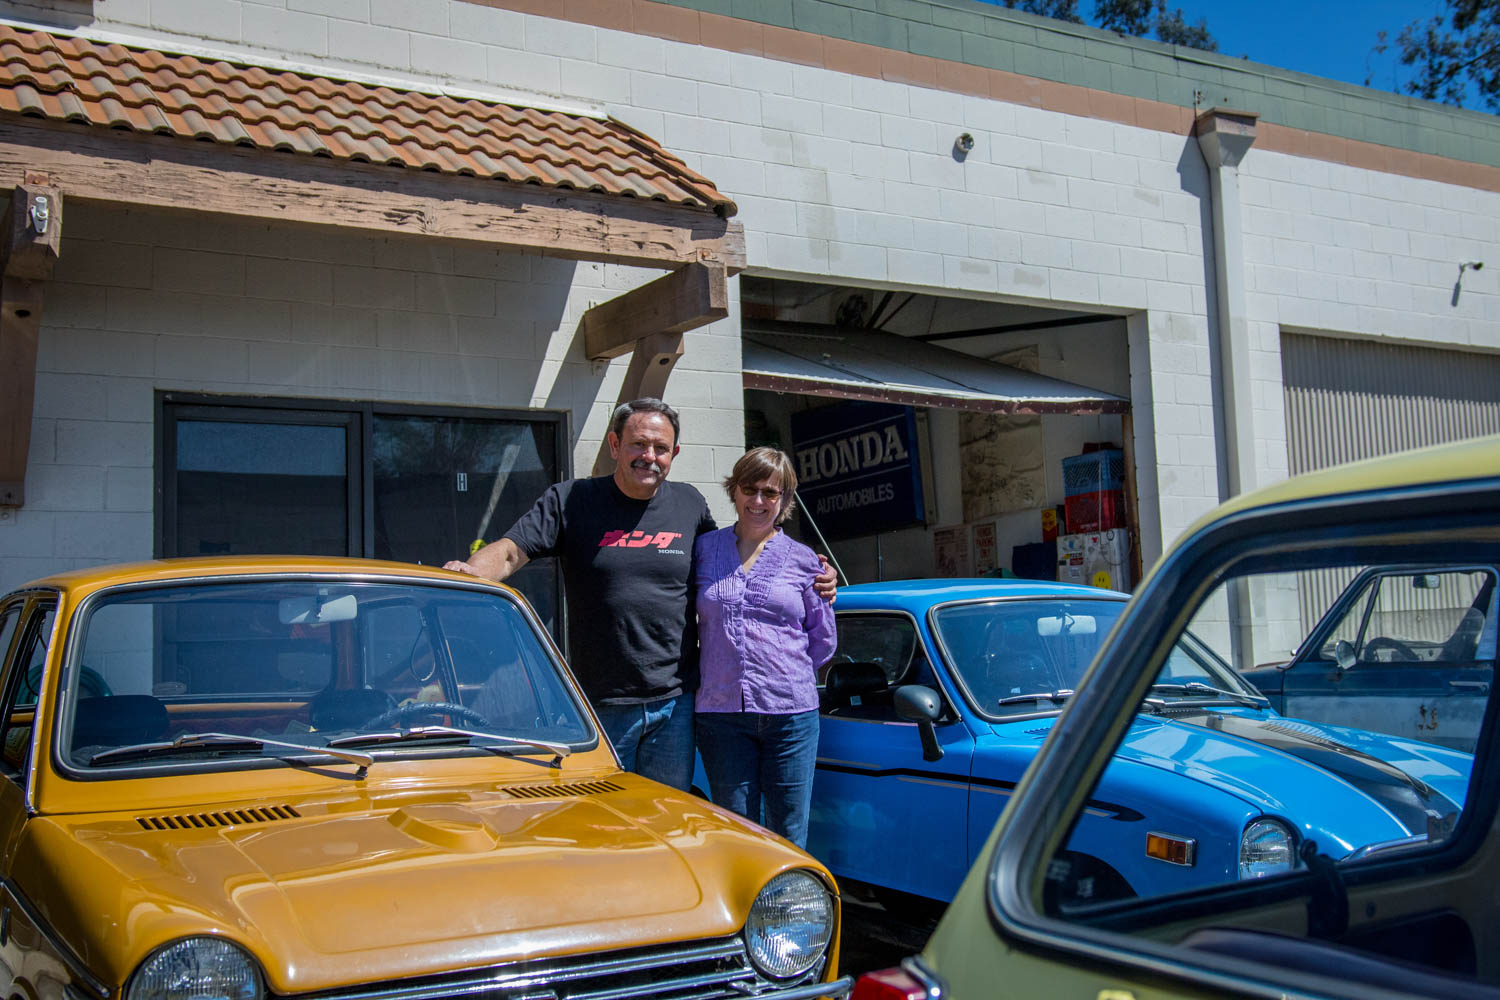 Tim Mings and wife infront of his shop